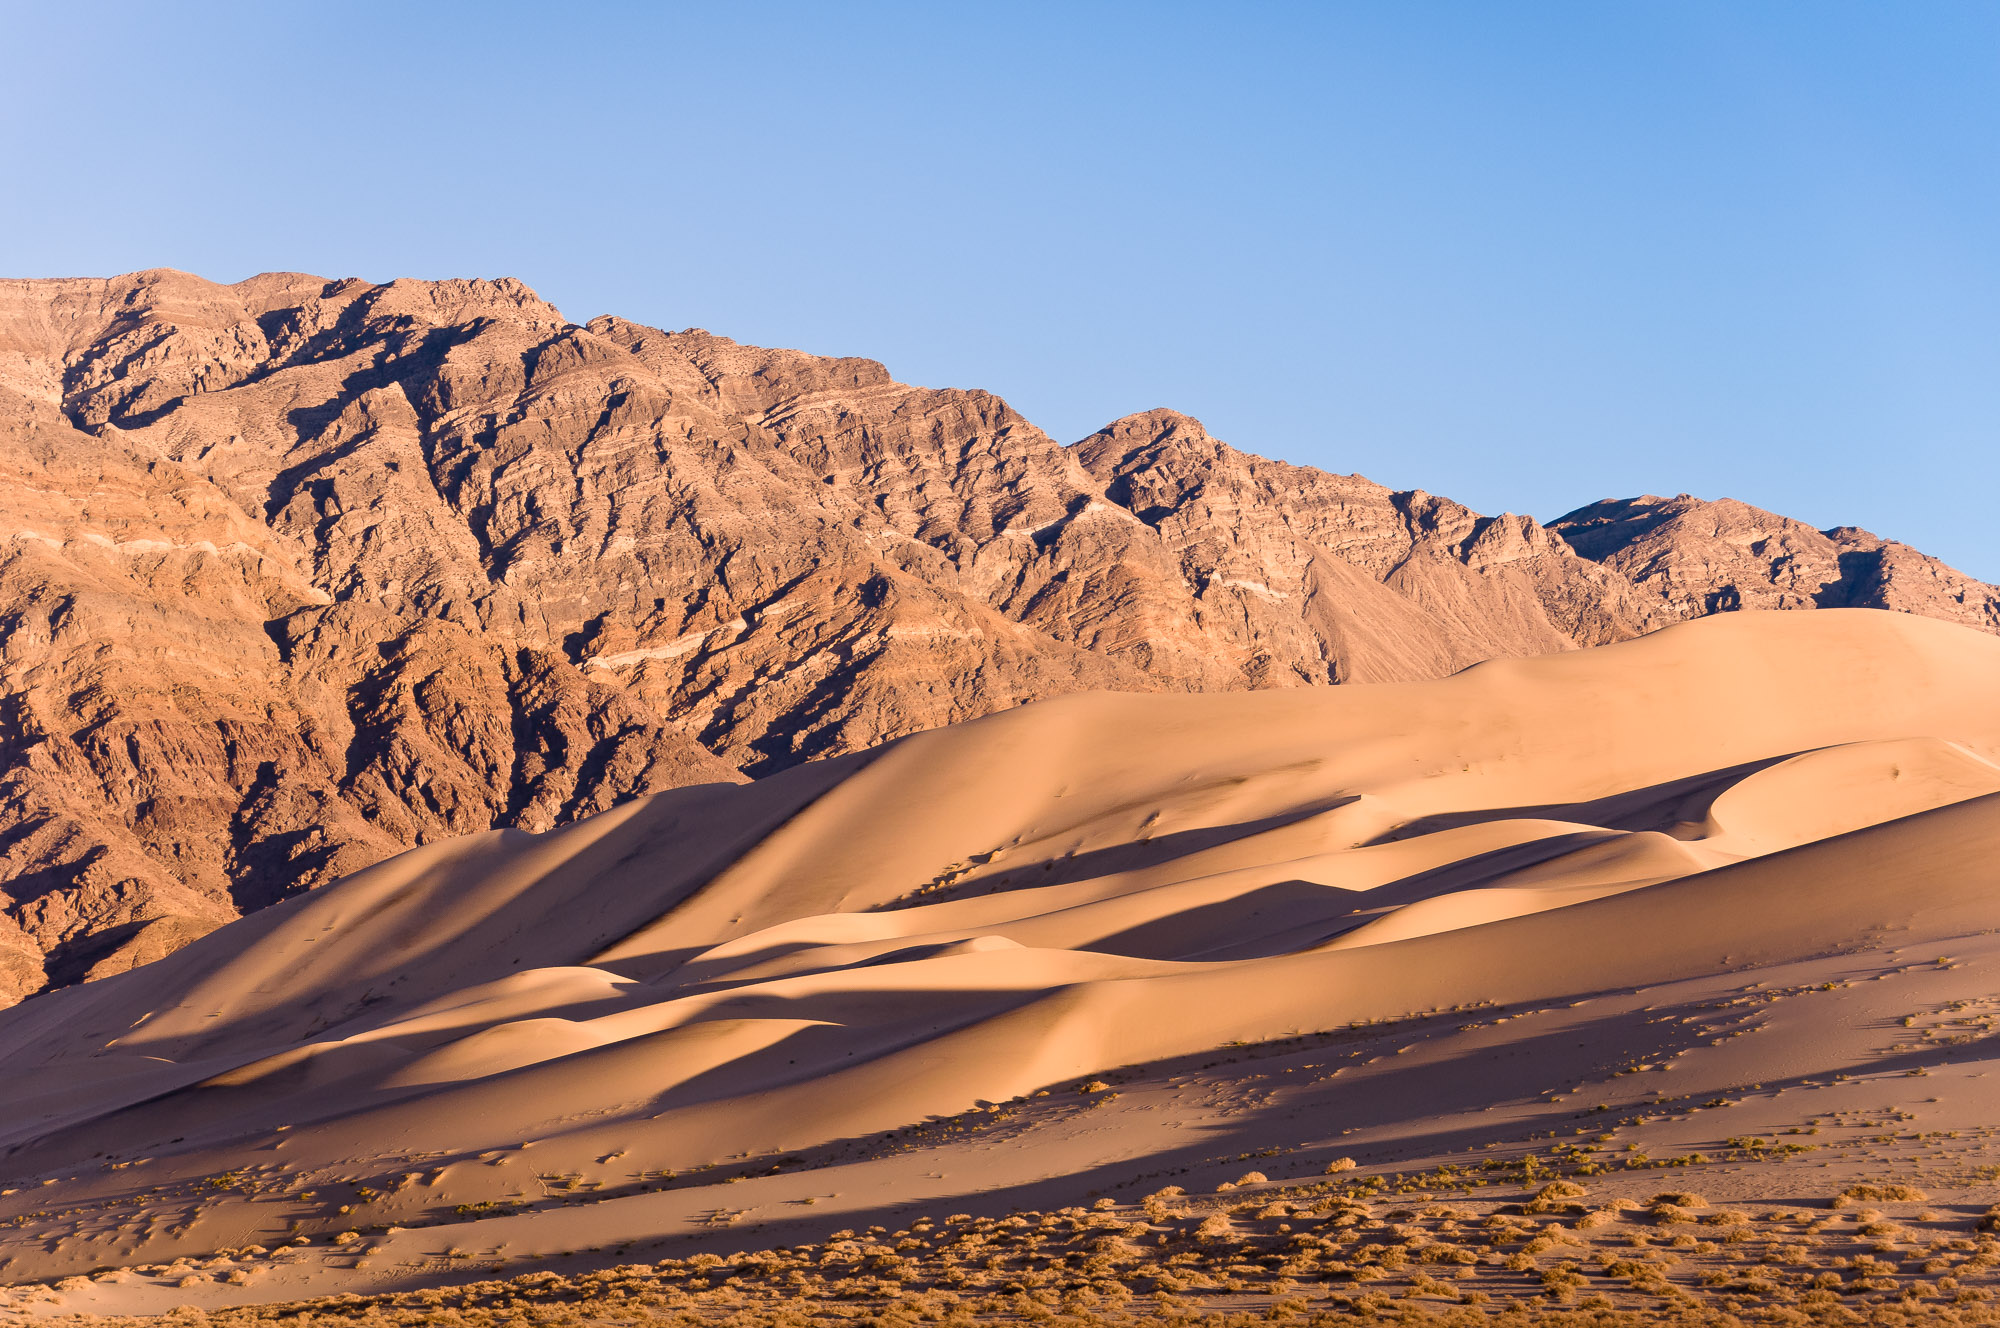 Eureka Dunes - Death Valley National Park, California